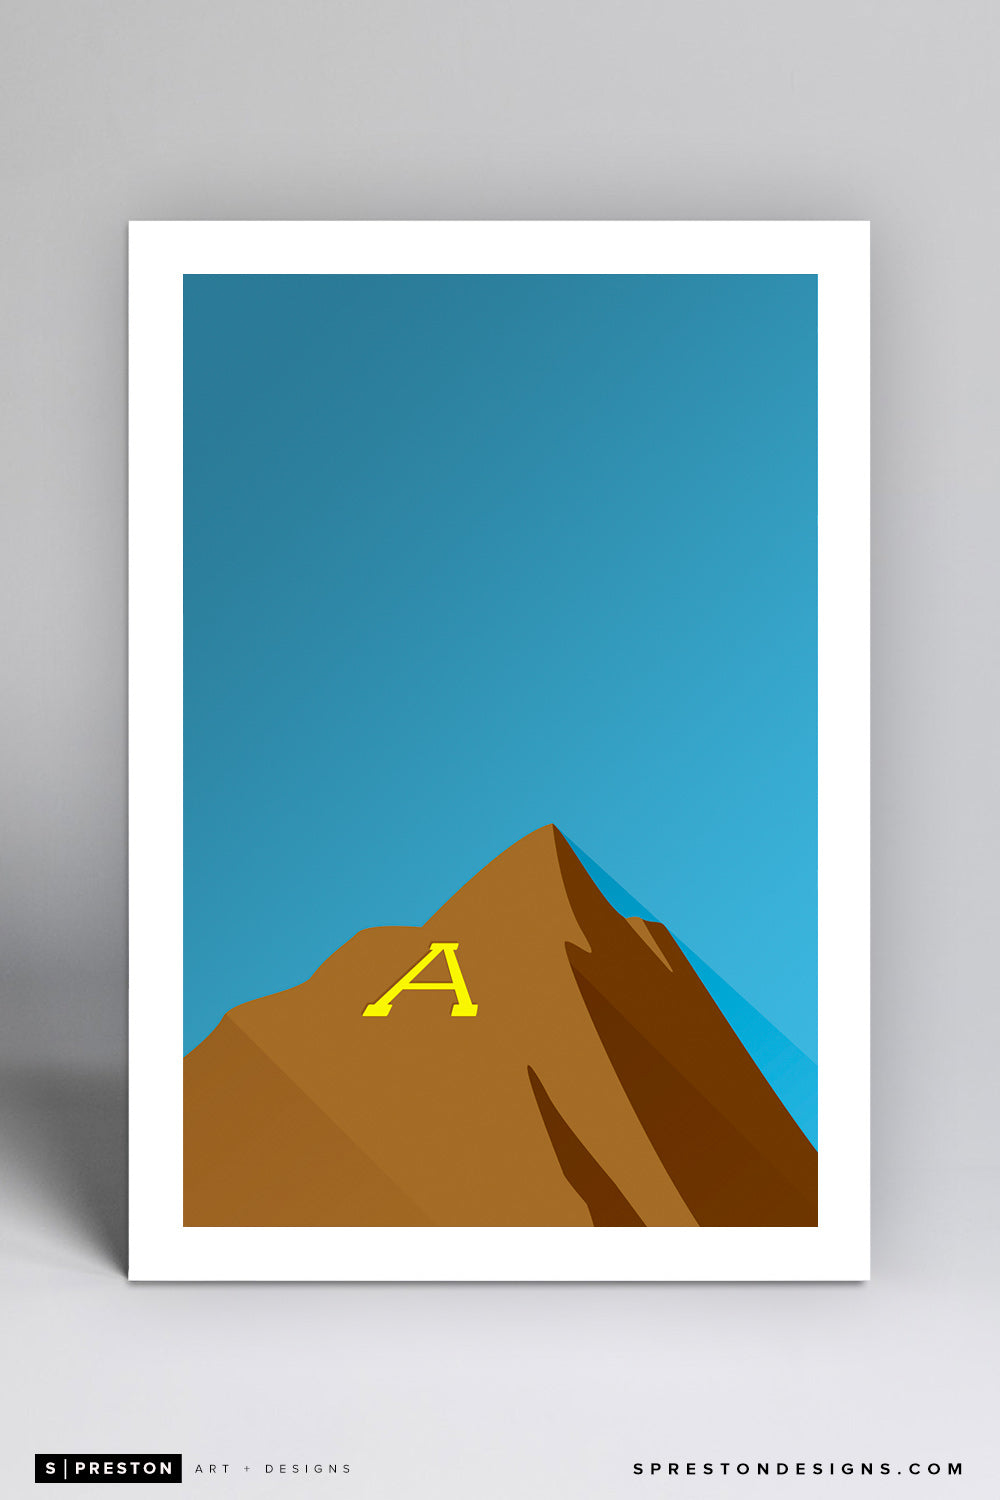 Minimalist Sun Devil Stadium - Arizona State University - S. Preston